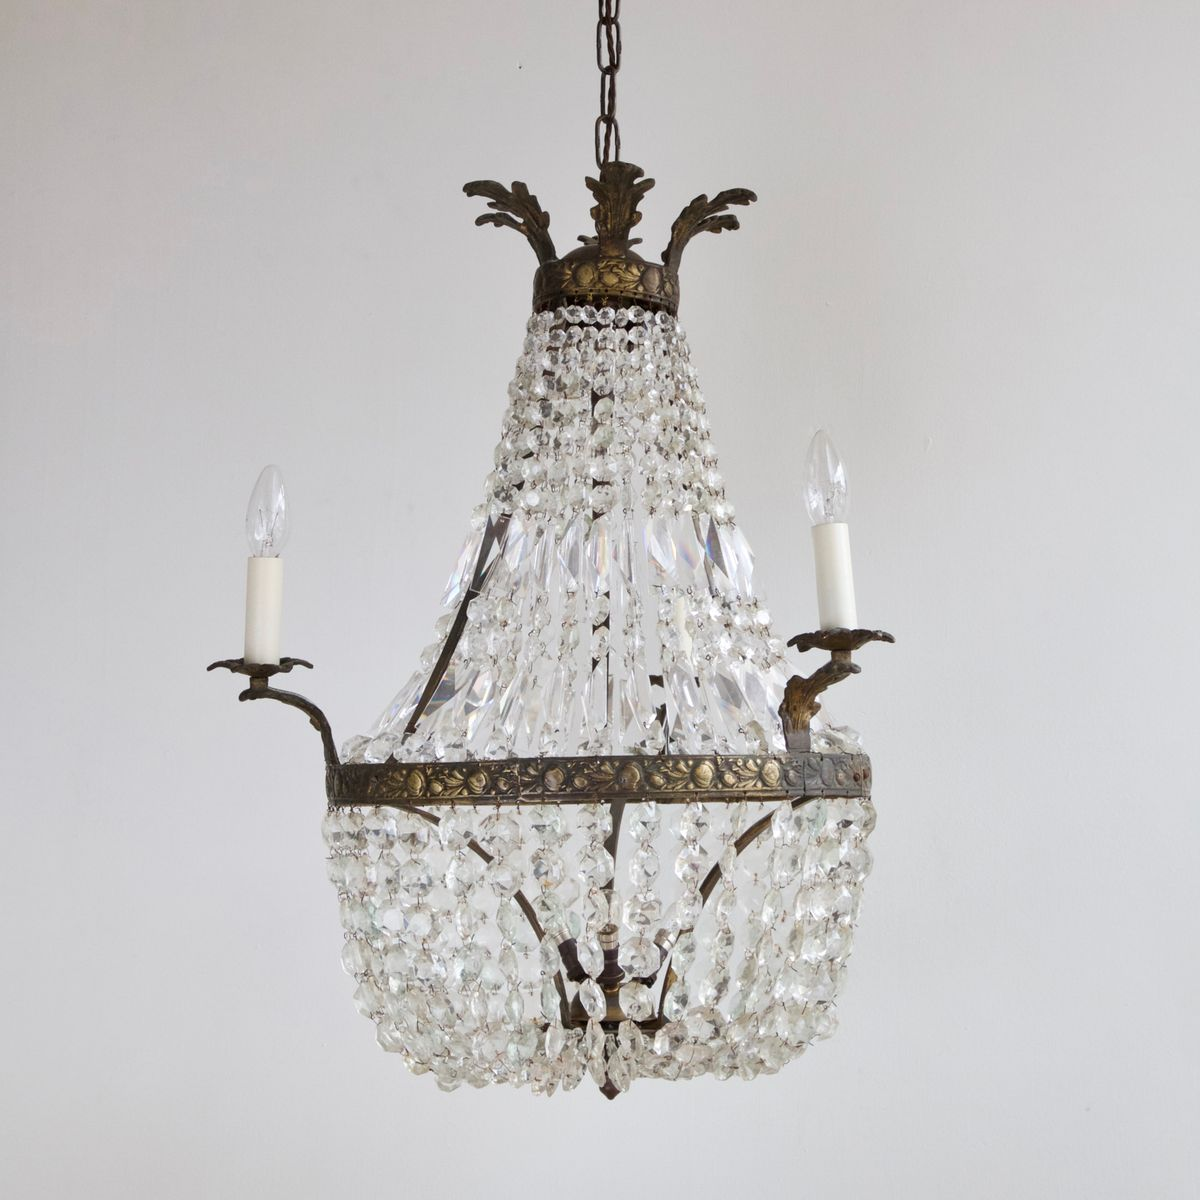 Vintage Balloon Chandelier for sale at Pamono